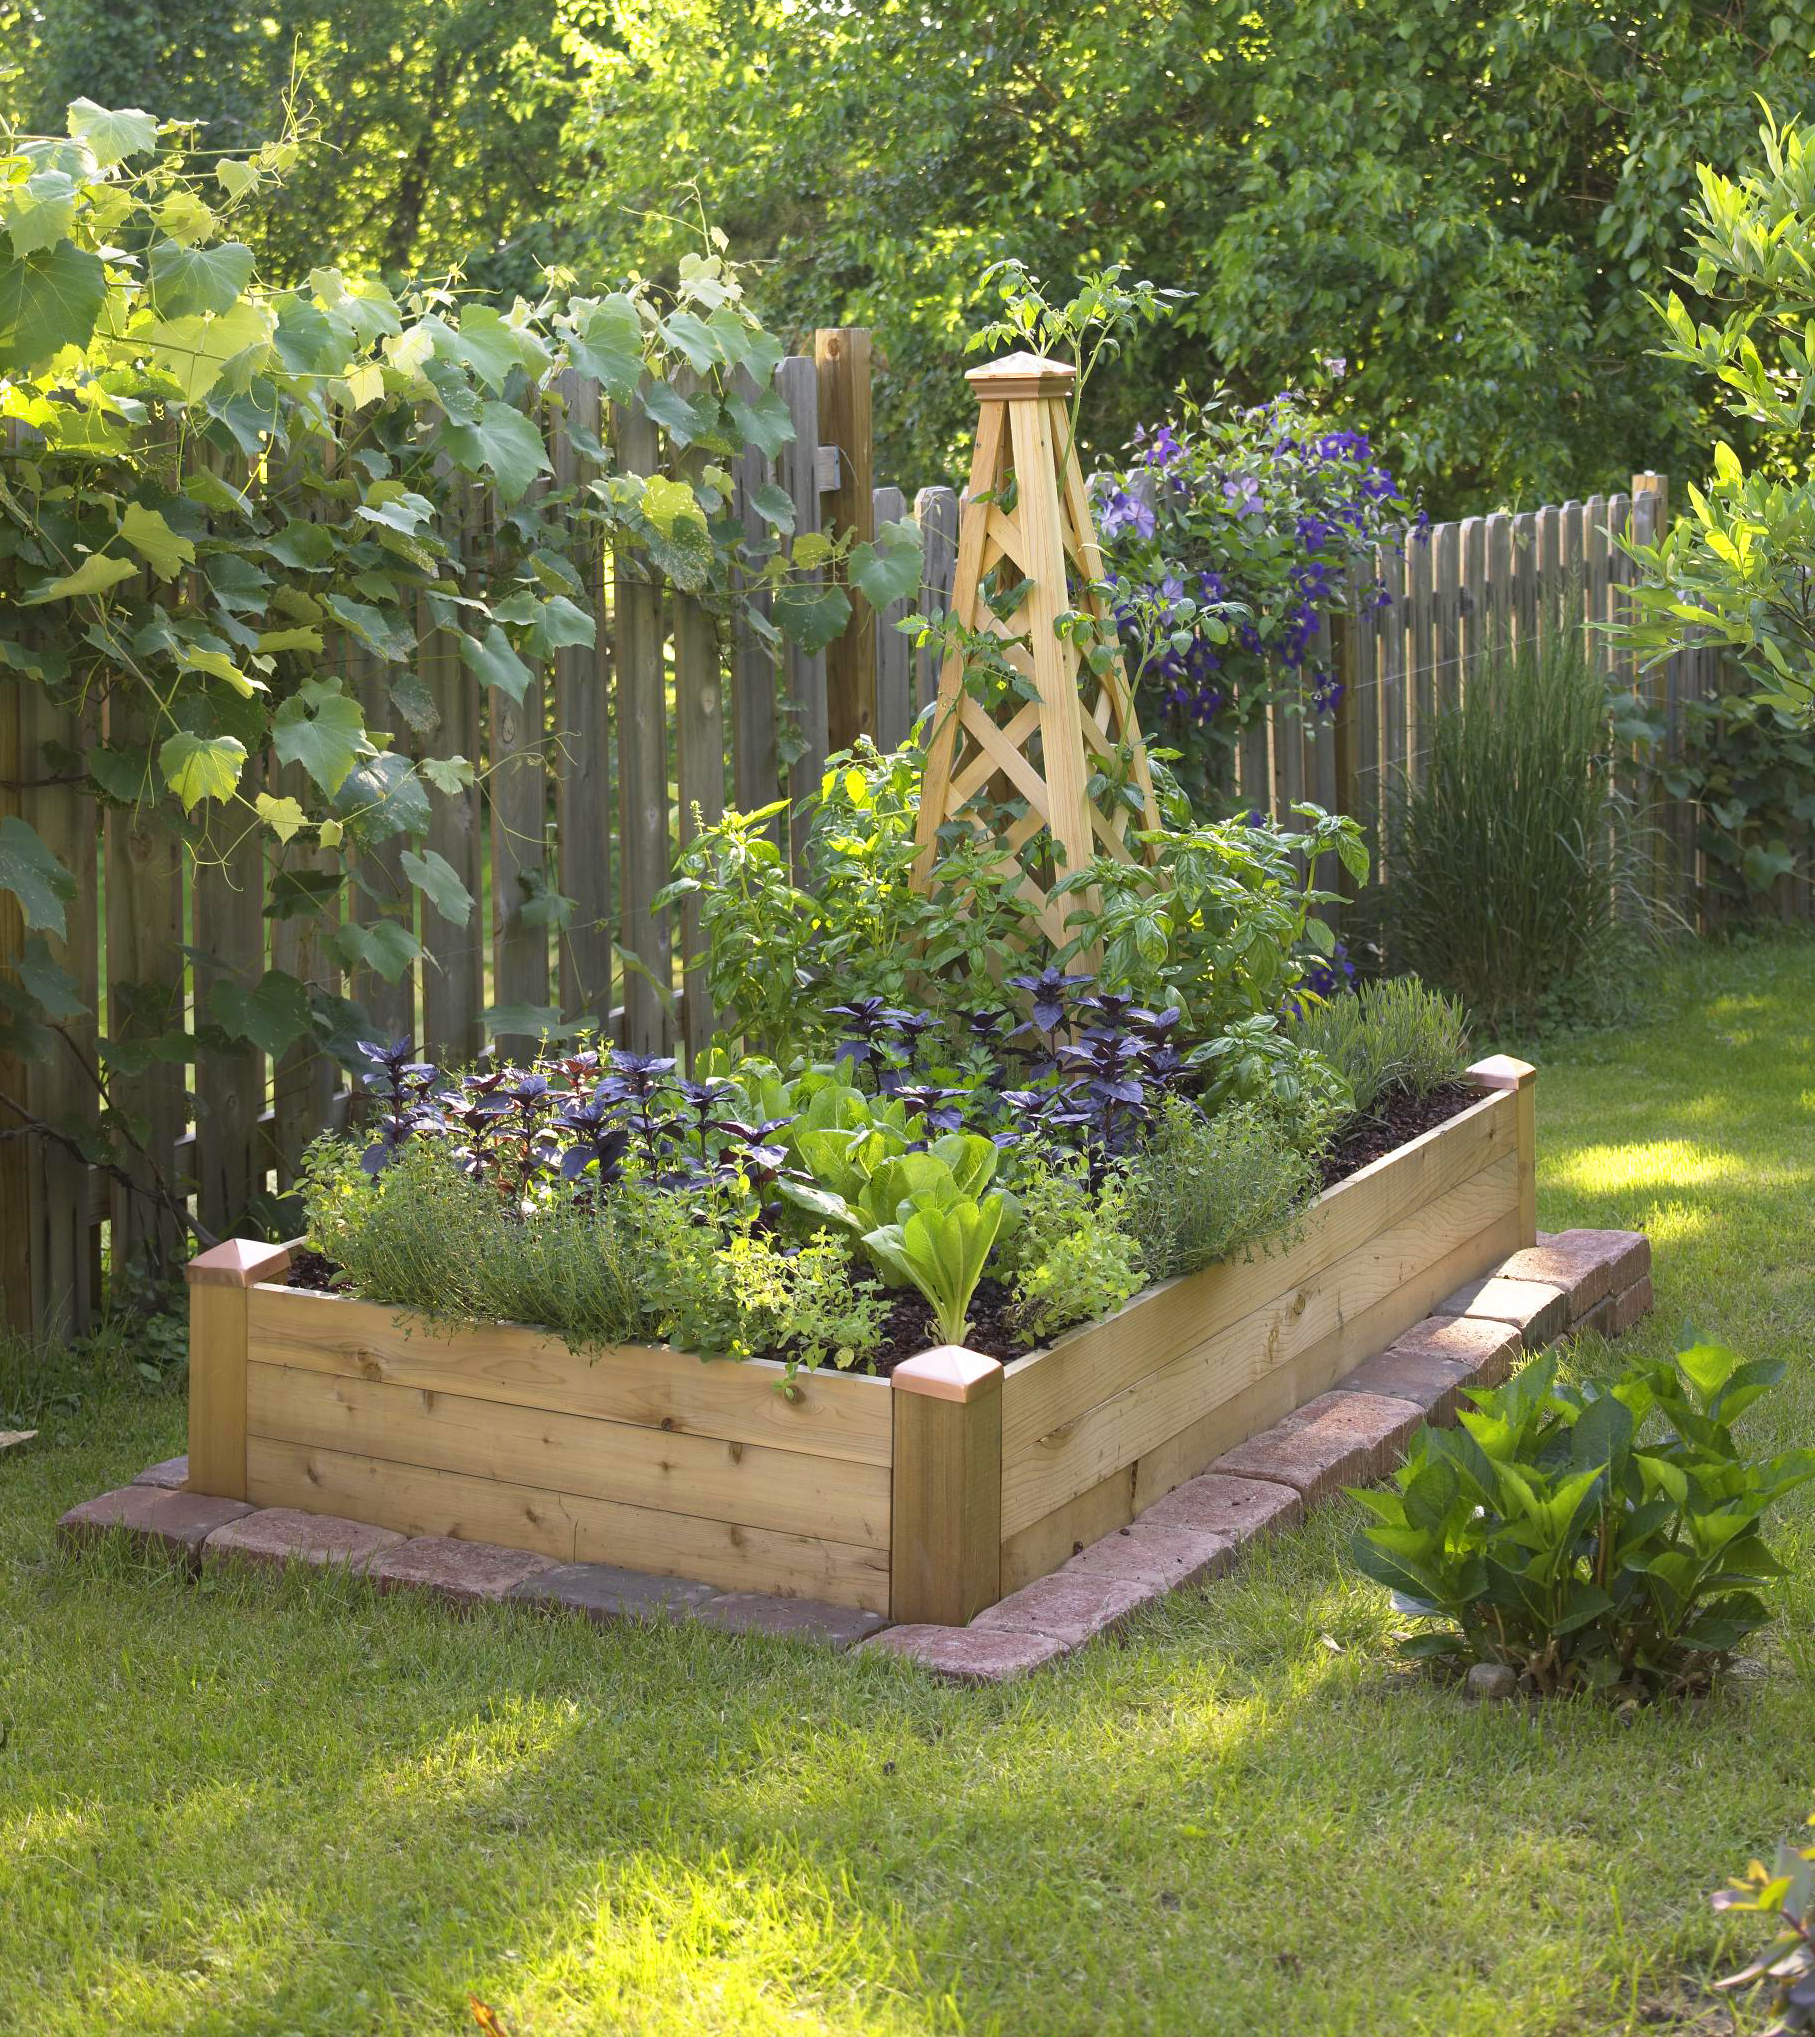 Small Garden Designs: Small-Space Gardening: Build A Tiny Raised Bed